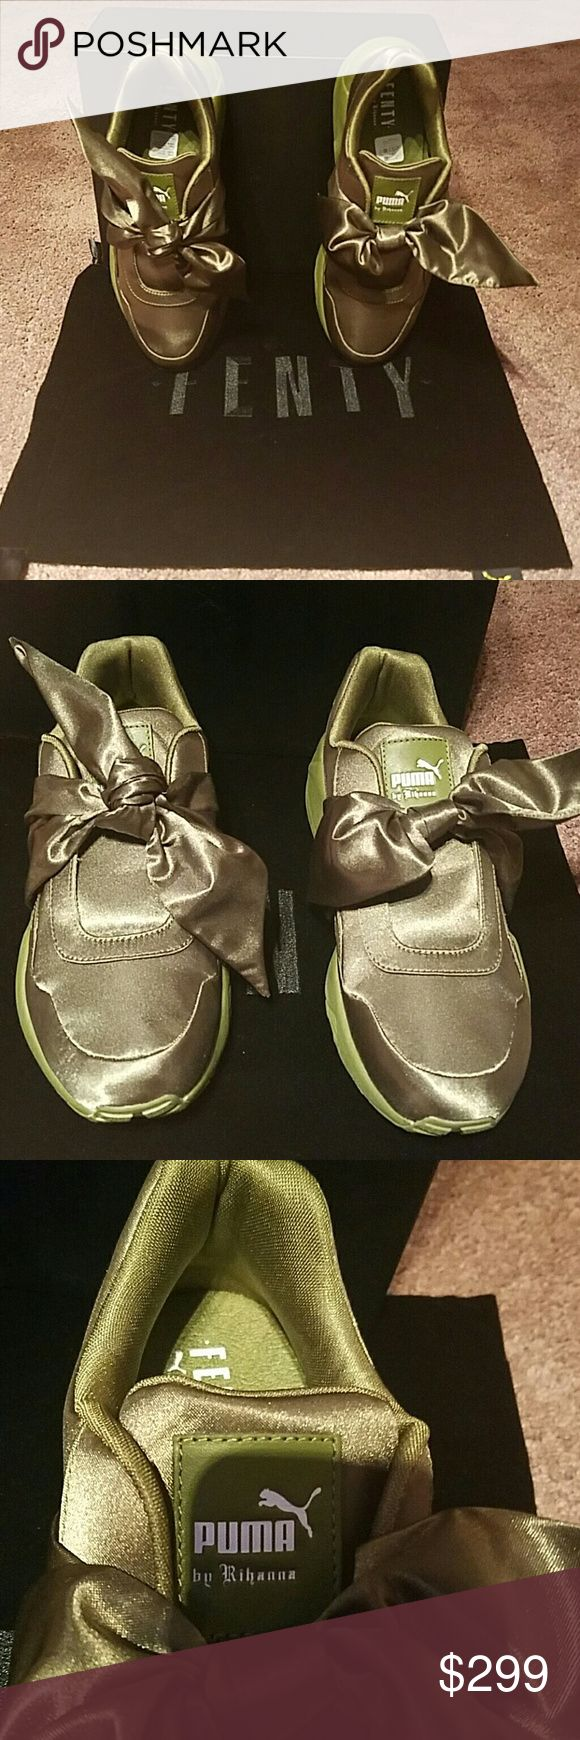 Fenty Puma Bow Sneakers by Rihanna Fenty Puma Bow Sneakers by Rihanna new with box and dust bag. Purchased from Bloomingdale's. Puma Shoes Sneakers